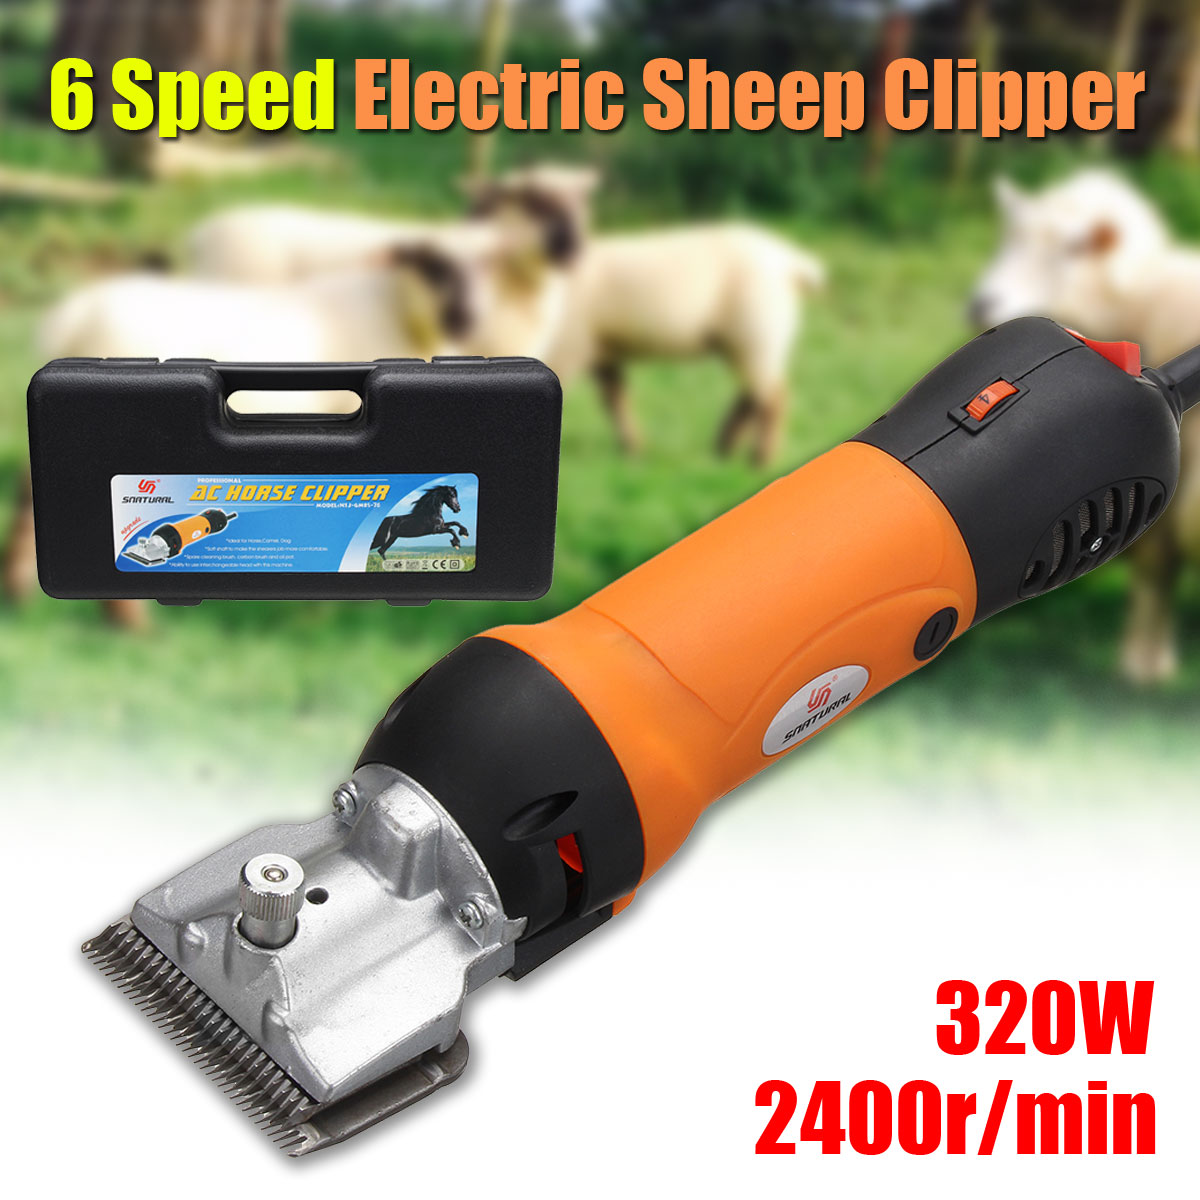 doersupp 110-240V Electric Horse Sheep Clipper 300W Shearing Machine Electric Dog Grooming Kit Cutter Wool scissor 3000r/min betaflight omnibus f4 pro v2 flight controller